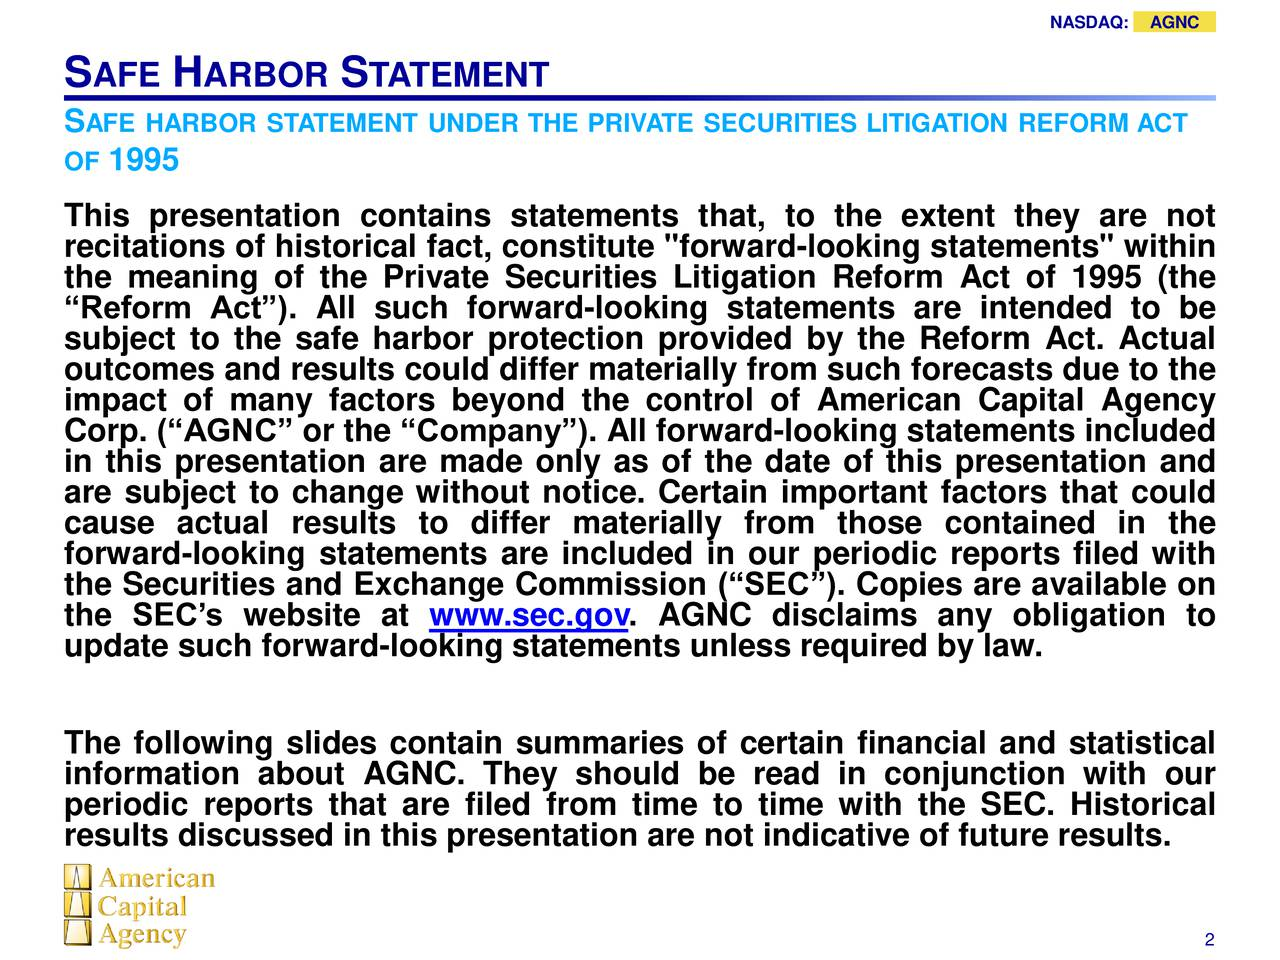 """S AFE H ARBOR S TATEMENT SAFE HARBOR STATEMENT UNDER THE PRIVATE SECURITIES LITIGATION REFORM ACT OF 1995 This presentation contains statements that, to the extent they are not recitations of historical fact, constitute """"forward-looking statements"""" within the meaning of the Private Securities Litigation Reform Act of 1995 (the Reform Act). All such forward-looking statements are intended to be subject to the safe harbor protection provided by the Reform Act. Actual outcomes and results could differ materially from such forecasts due to the impact of many factors beyond the control of American Capital Agency Corp. (AGNC or the Company). All forward-looking statements included in this presentation are made only as of the date of this presentation and are subject to change without notice. Certain important factors that could cause actual results to differ materially from those contained in the forward-looking statements are included in our periodic reports filed with the Securities and Exchange Commission (SEC). Copies are available on the SECs website at www.sec.gov. AGNC disclaims any obligation to update such forward-looking statements unless required by law. The following slides contain summaries of certain financial and statistical periodic reports that are filed from time to time with the SEC. Historical results discussed in this presentation are not indicative of future results."""